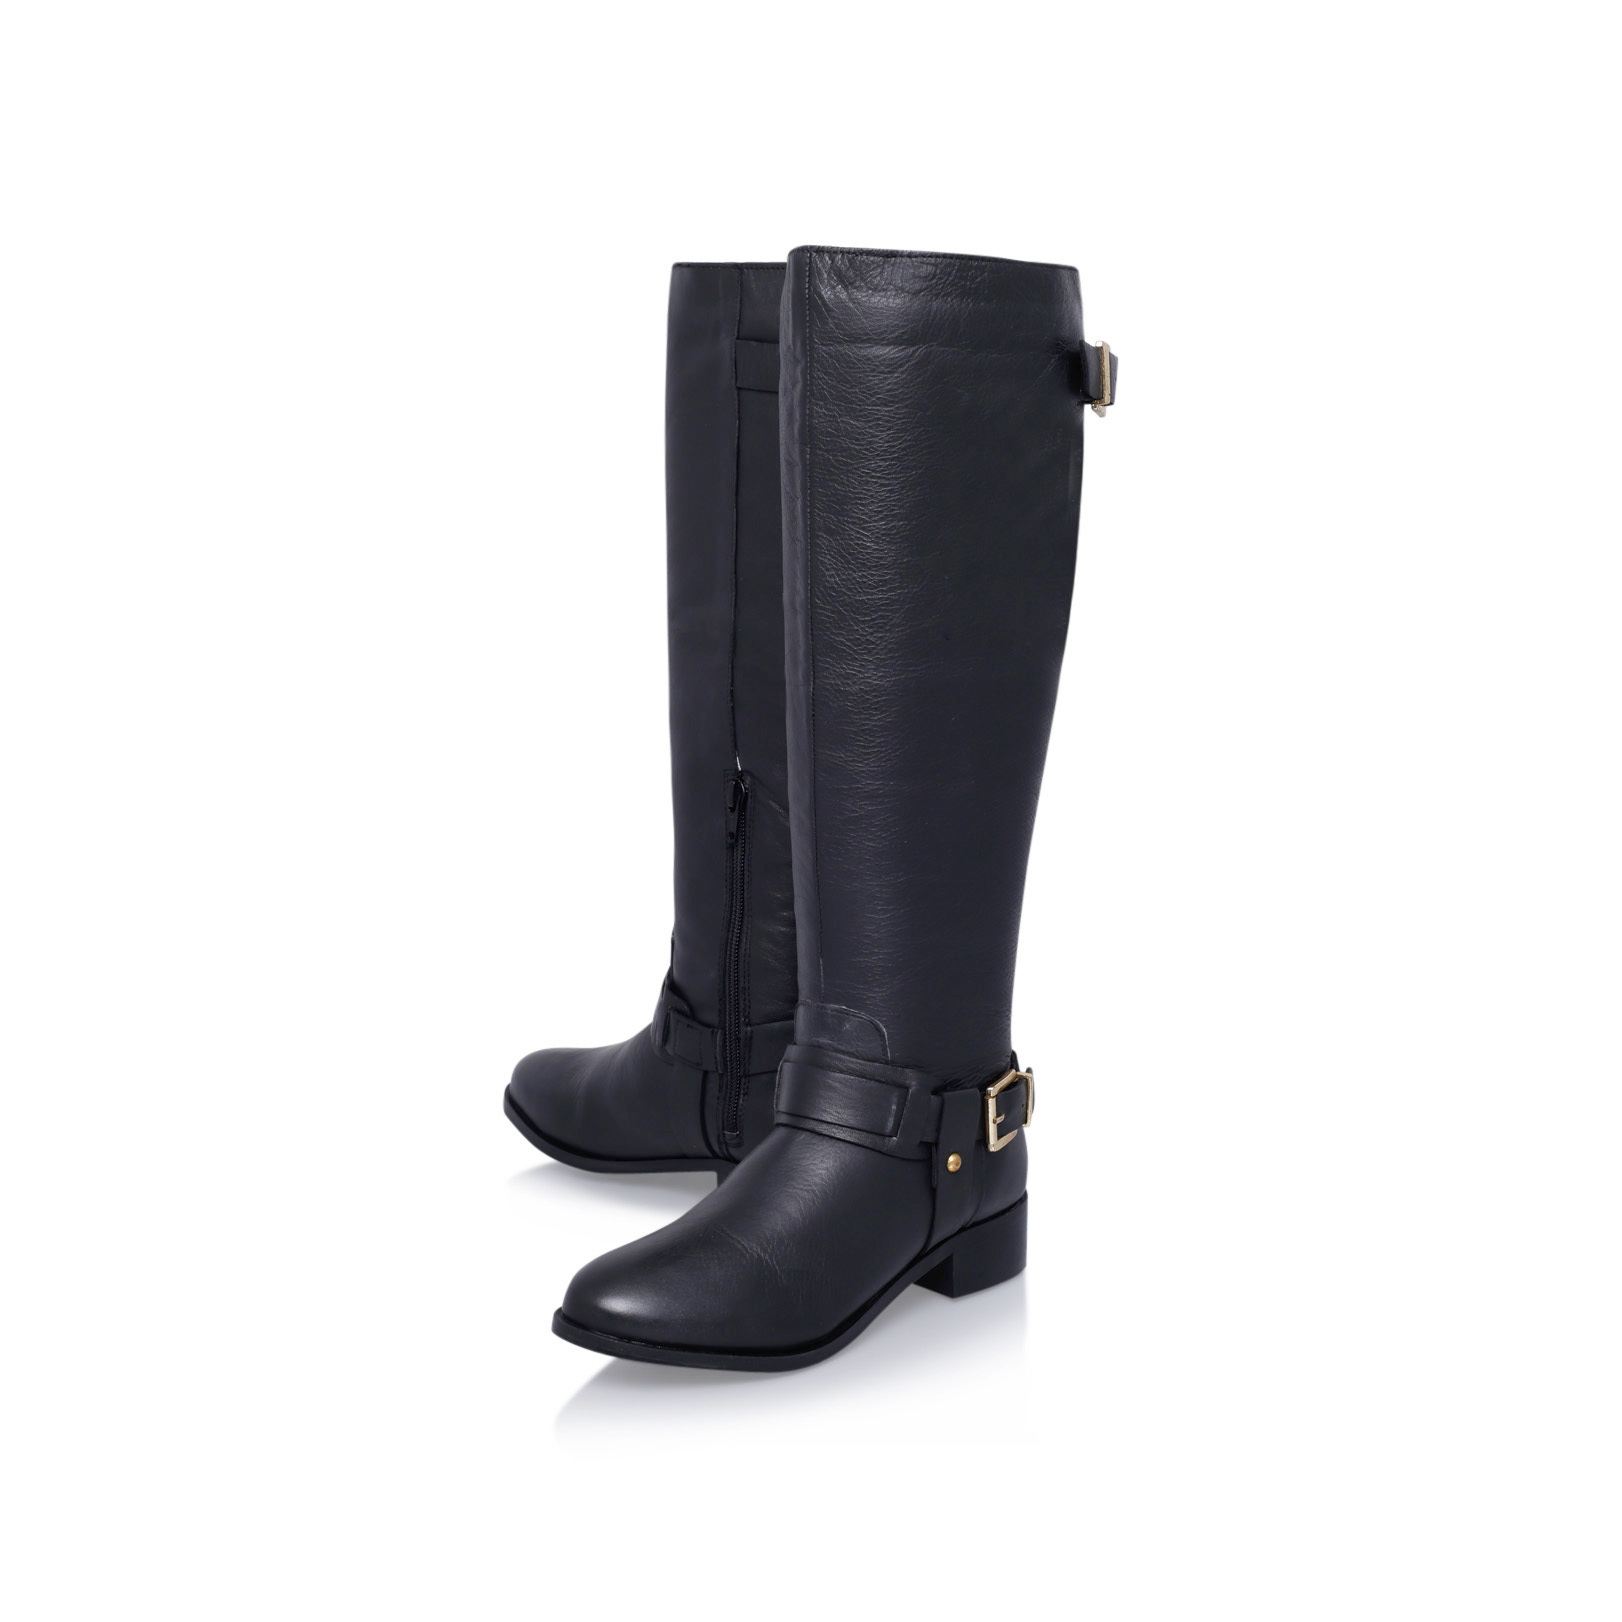 WANDSWORTH Miss KG Wandsworth Black Leather Flat High Leg Boot by MISS KG